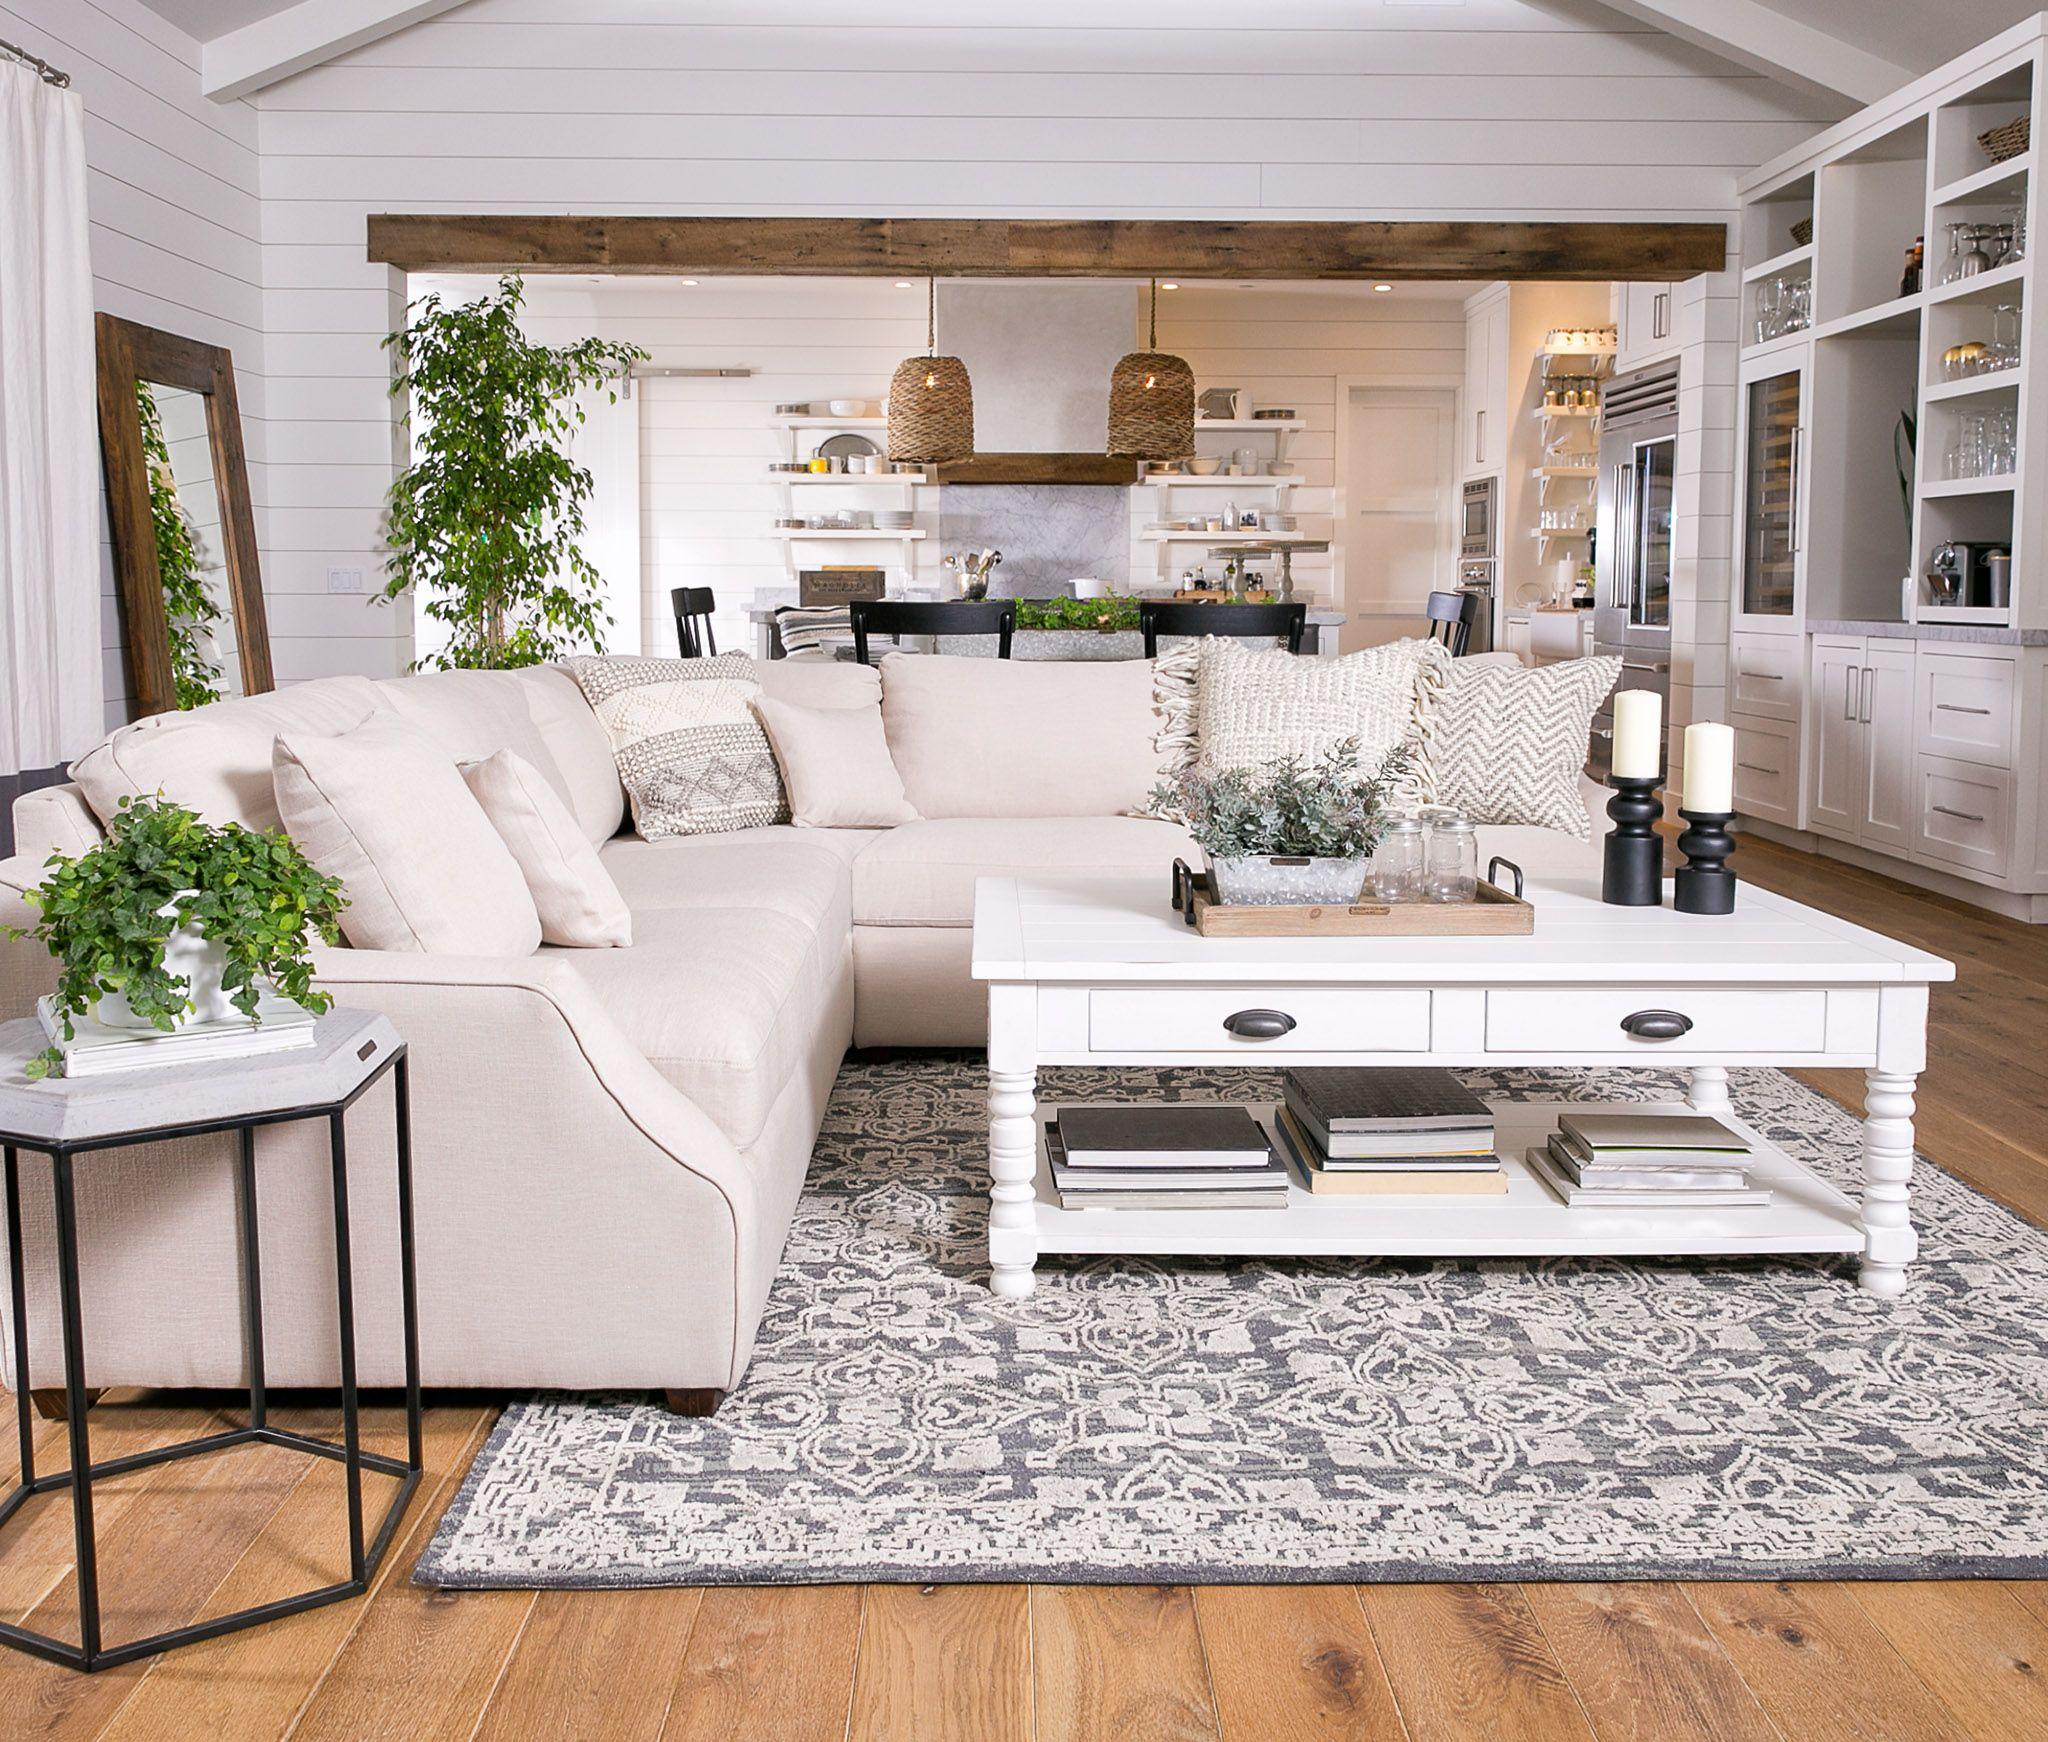 Magnolia Home Homestead 3 Piece Sectionaljoanna Gaines In 2019 With Magnolia Home Homestead Sofa Chairs By Joanna Gaines (Image 13 of 25)